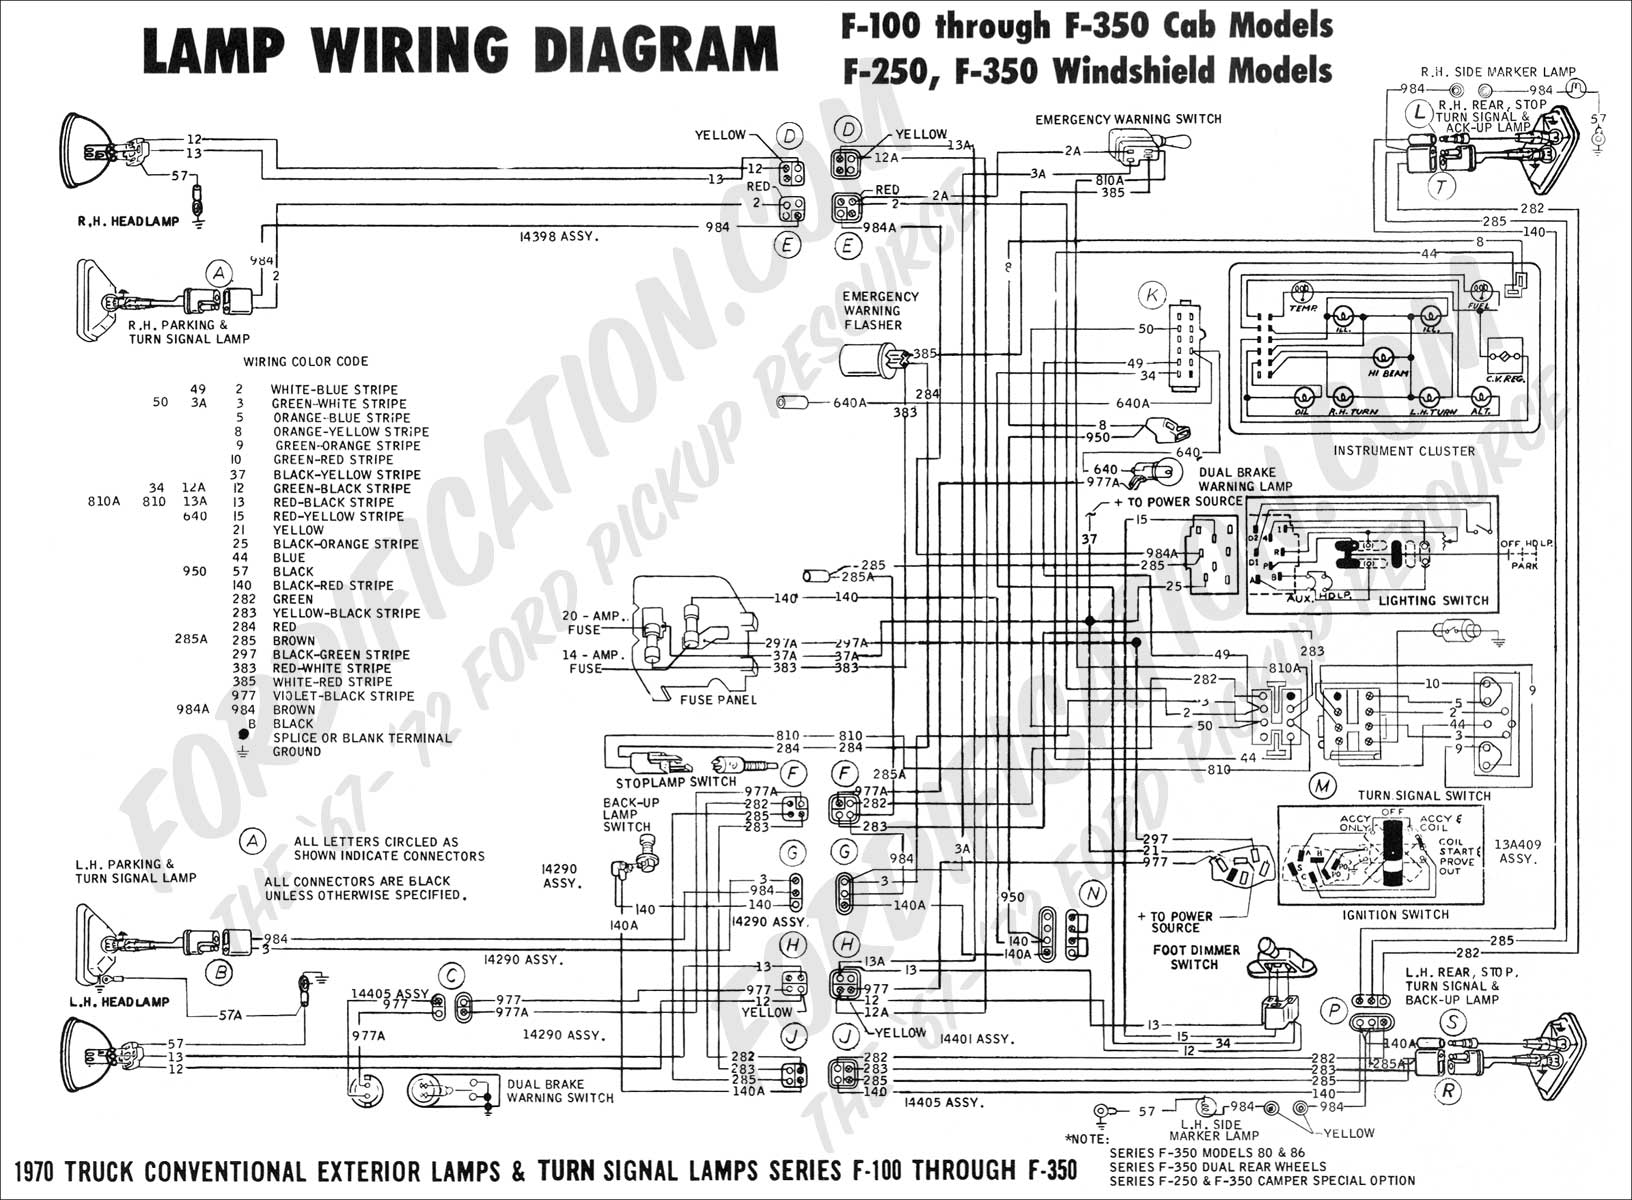 1976 Lincoln Continental Wiring Diagrams Worksheet And Contential Diagram 1985 Ford Dia Third Level Rh 4 17 Jacobwinterstein Com 1964